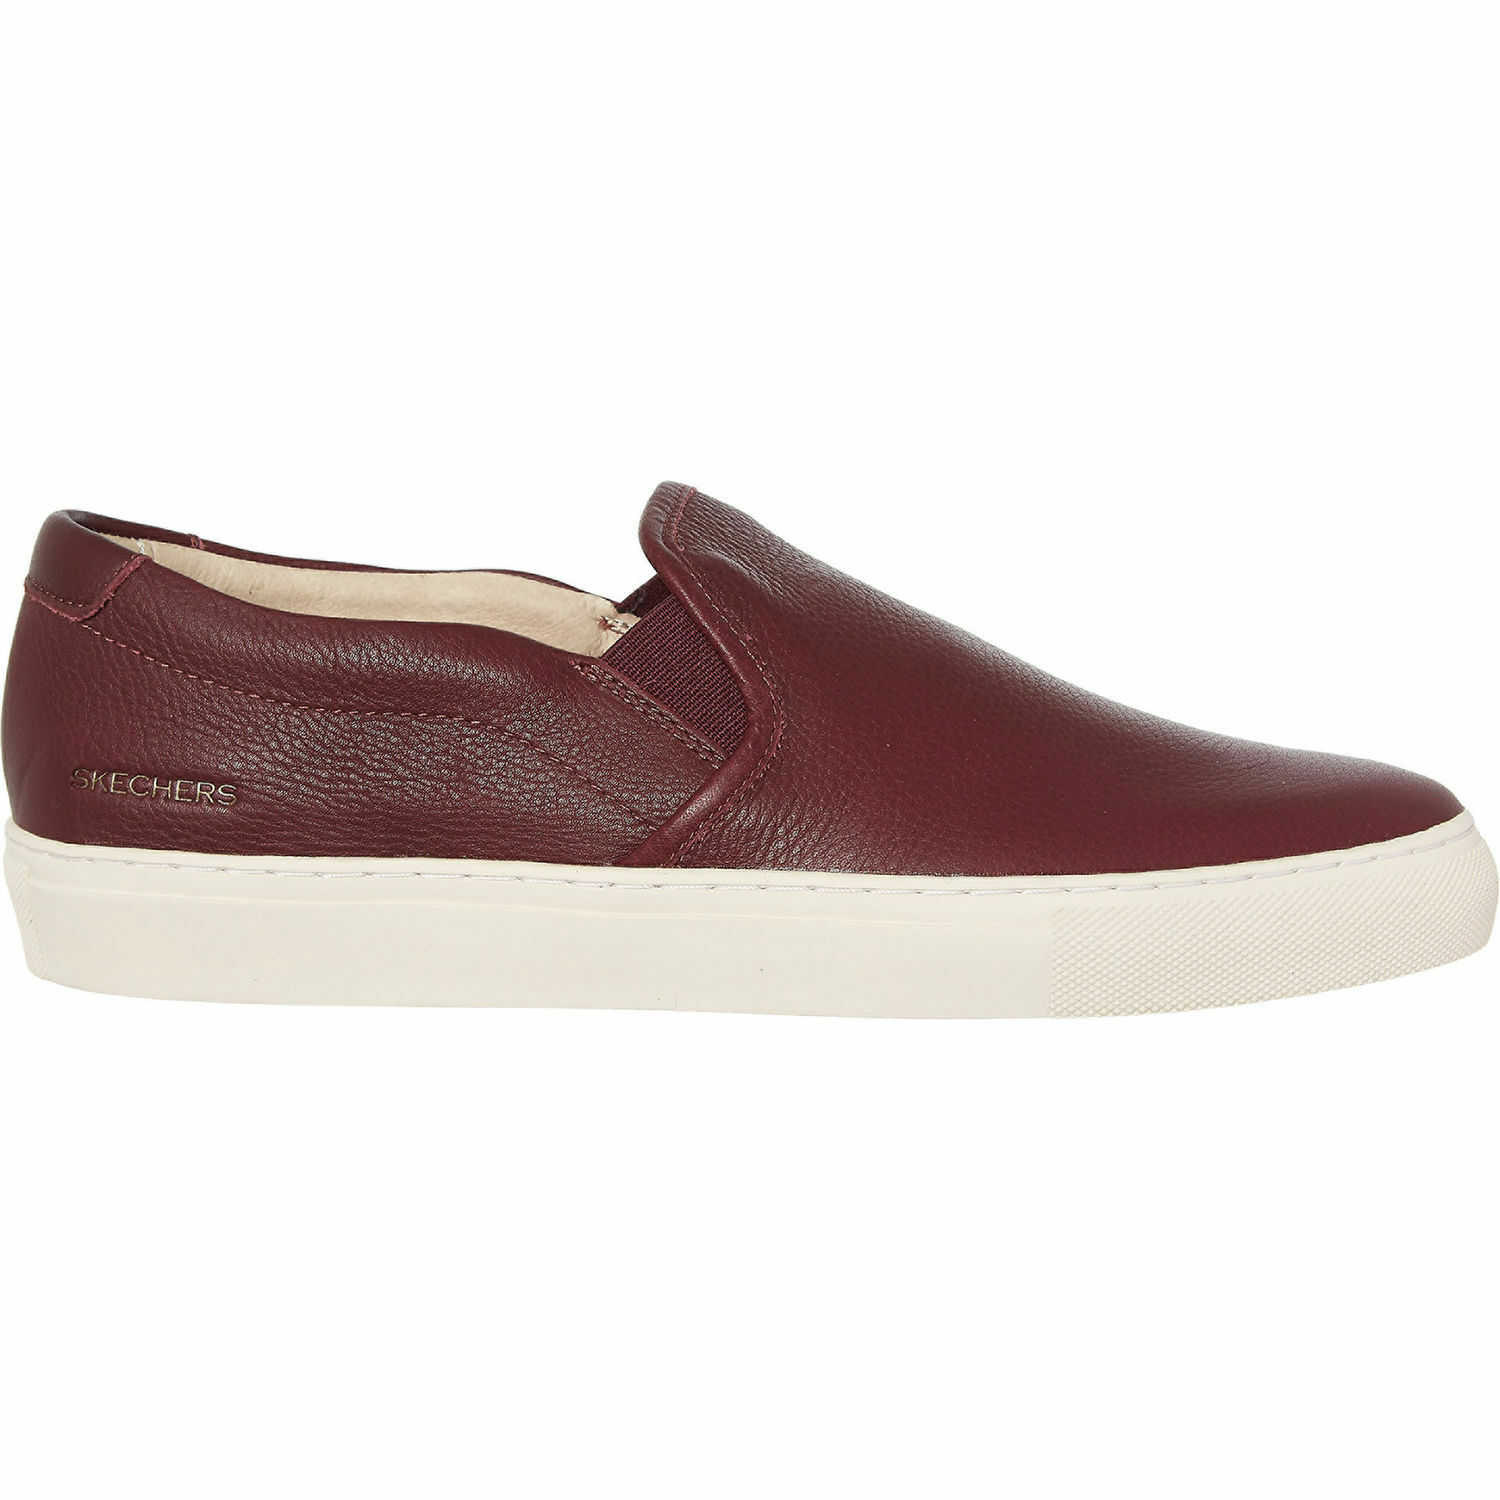 SKECHERS leather slip on Trainers. Size 7.